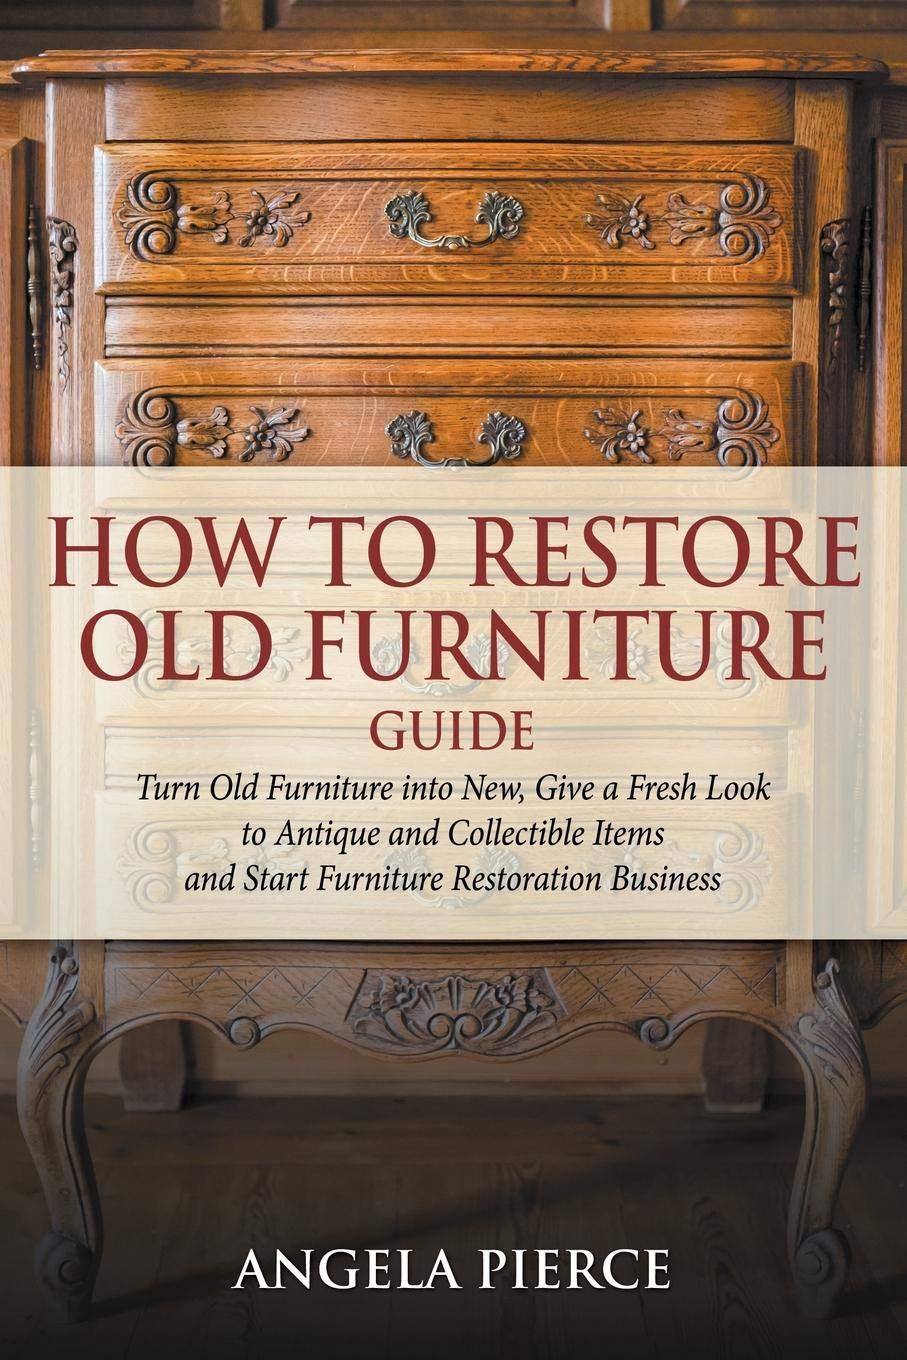 How to Restore Antique Furniture Inspirational How to Restore Old Furniture Guide Turn Old Furniture Into